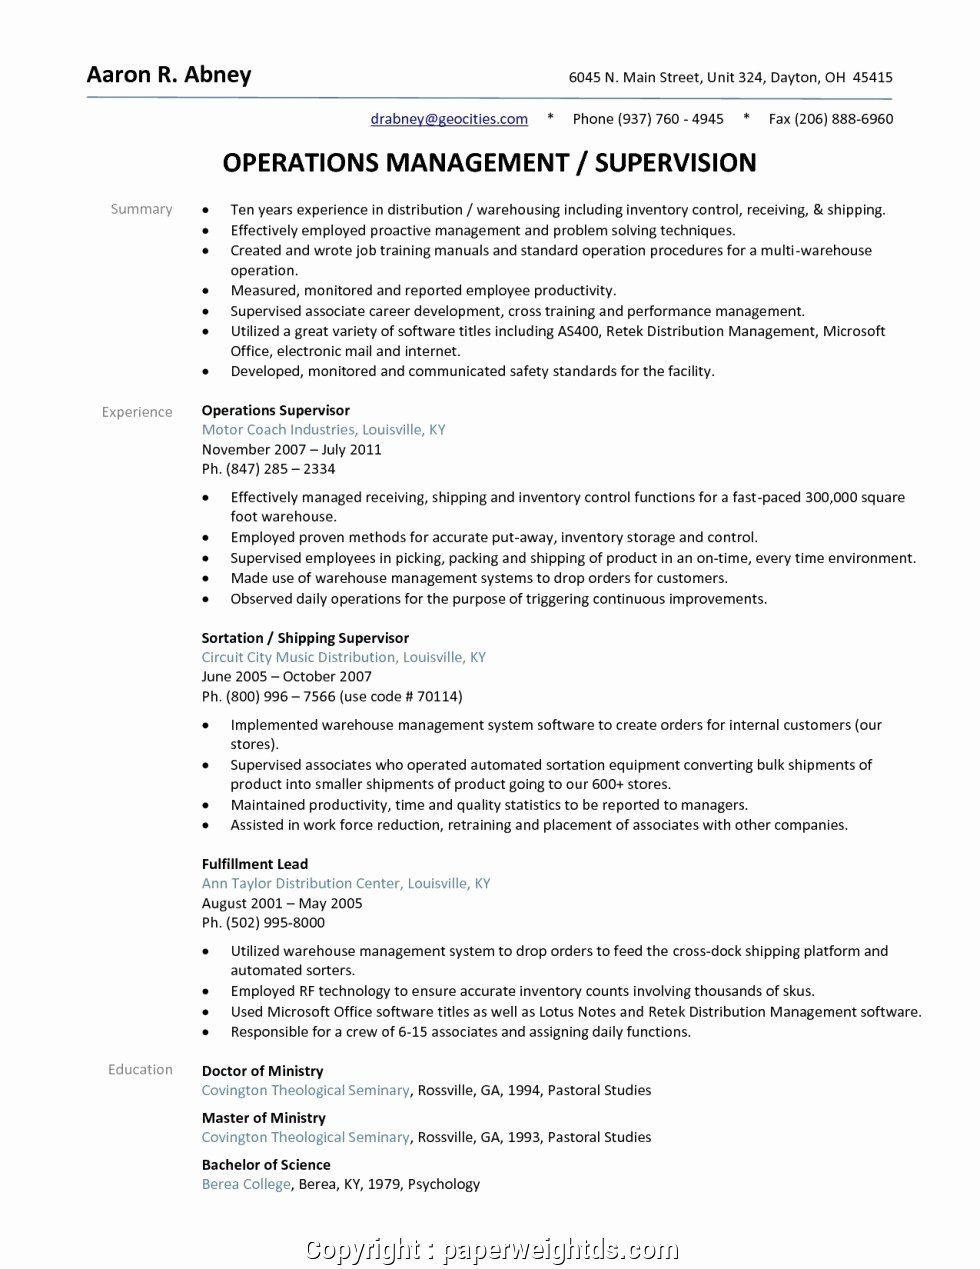 Warehouse Resume Objective Examples Awesome Unique Warehouse Supervisor Resume Objective Resum In 2020 Resume Objective Examples Job Resume Examples Job Resume Samples